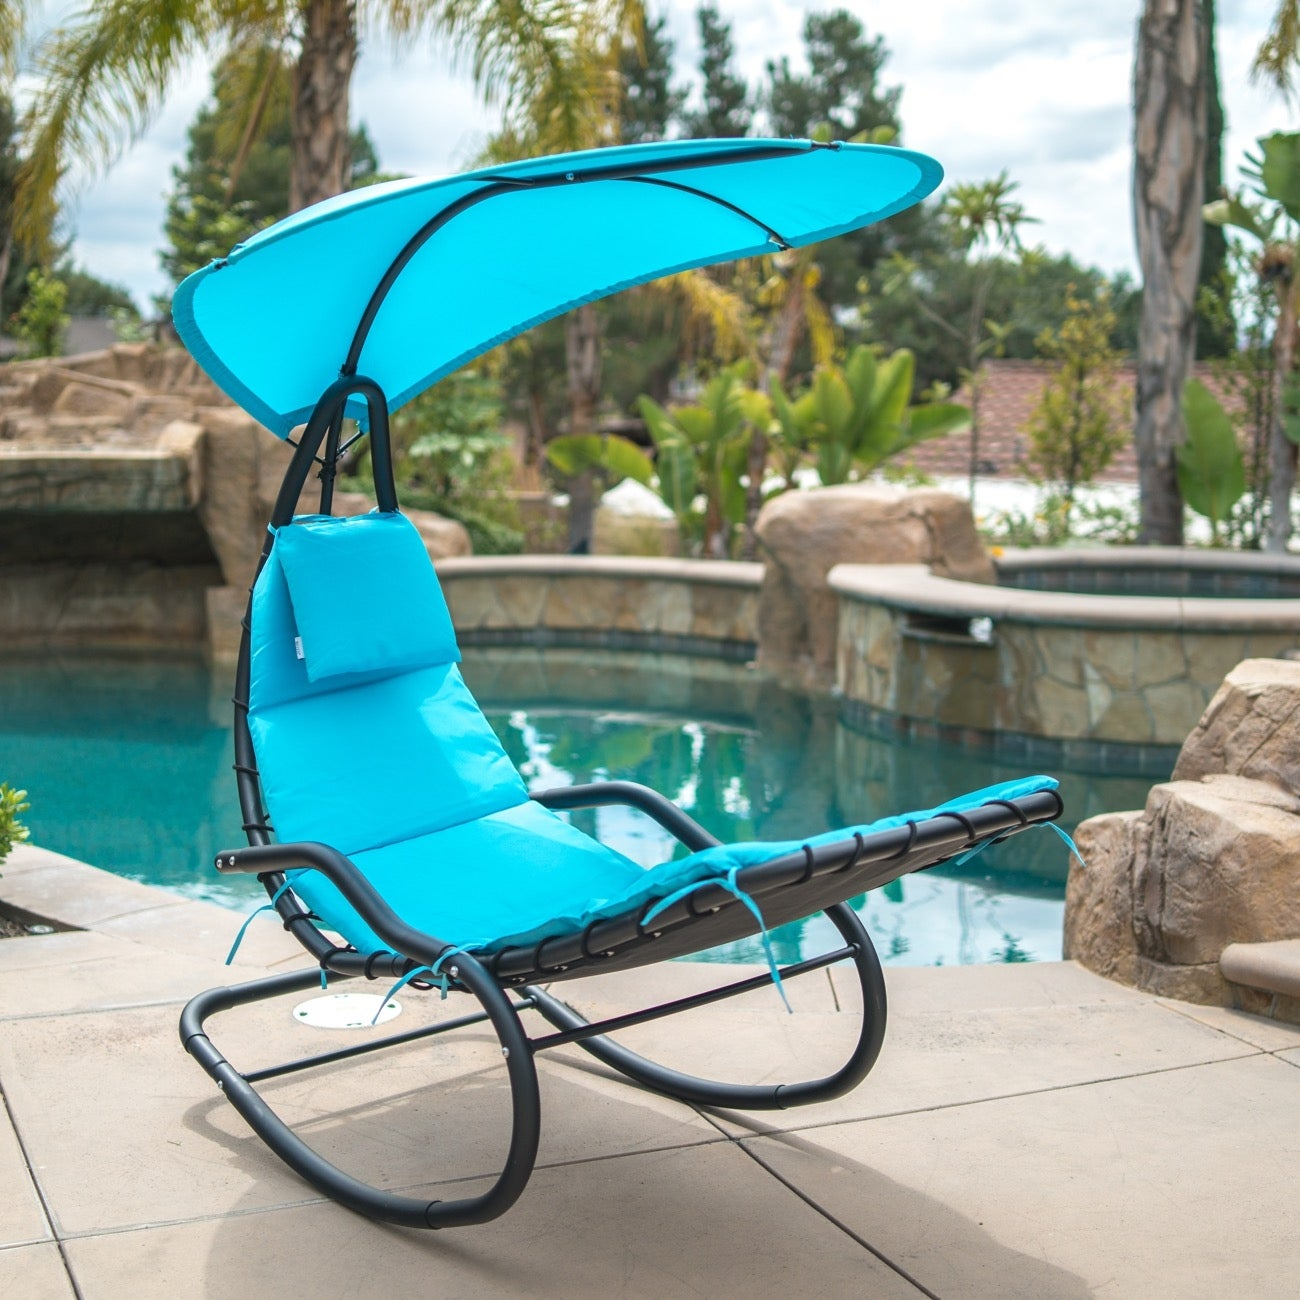 Shop BELLEZE Hanging Rocking Sunshade Canopy Chair Chaise Umbrella Lounge  Arc Patio Bungee Padded Cushions Outdoor   Free Shipping Today    Overstock.com   ...